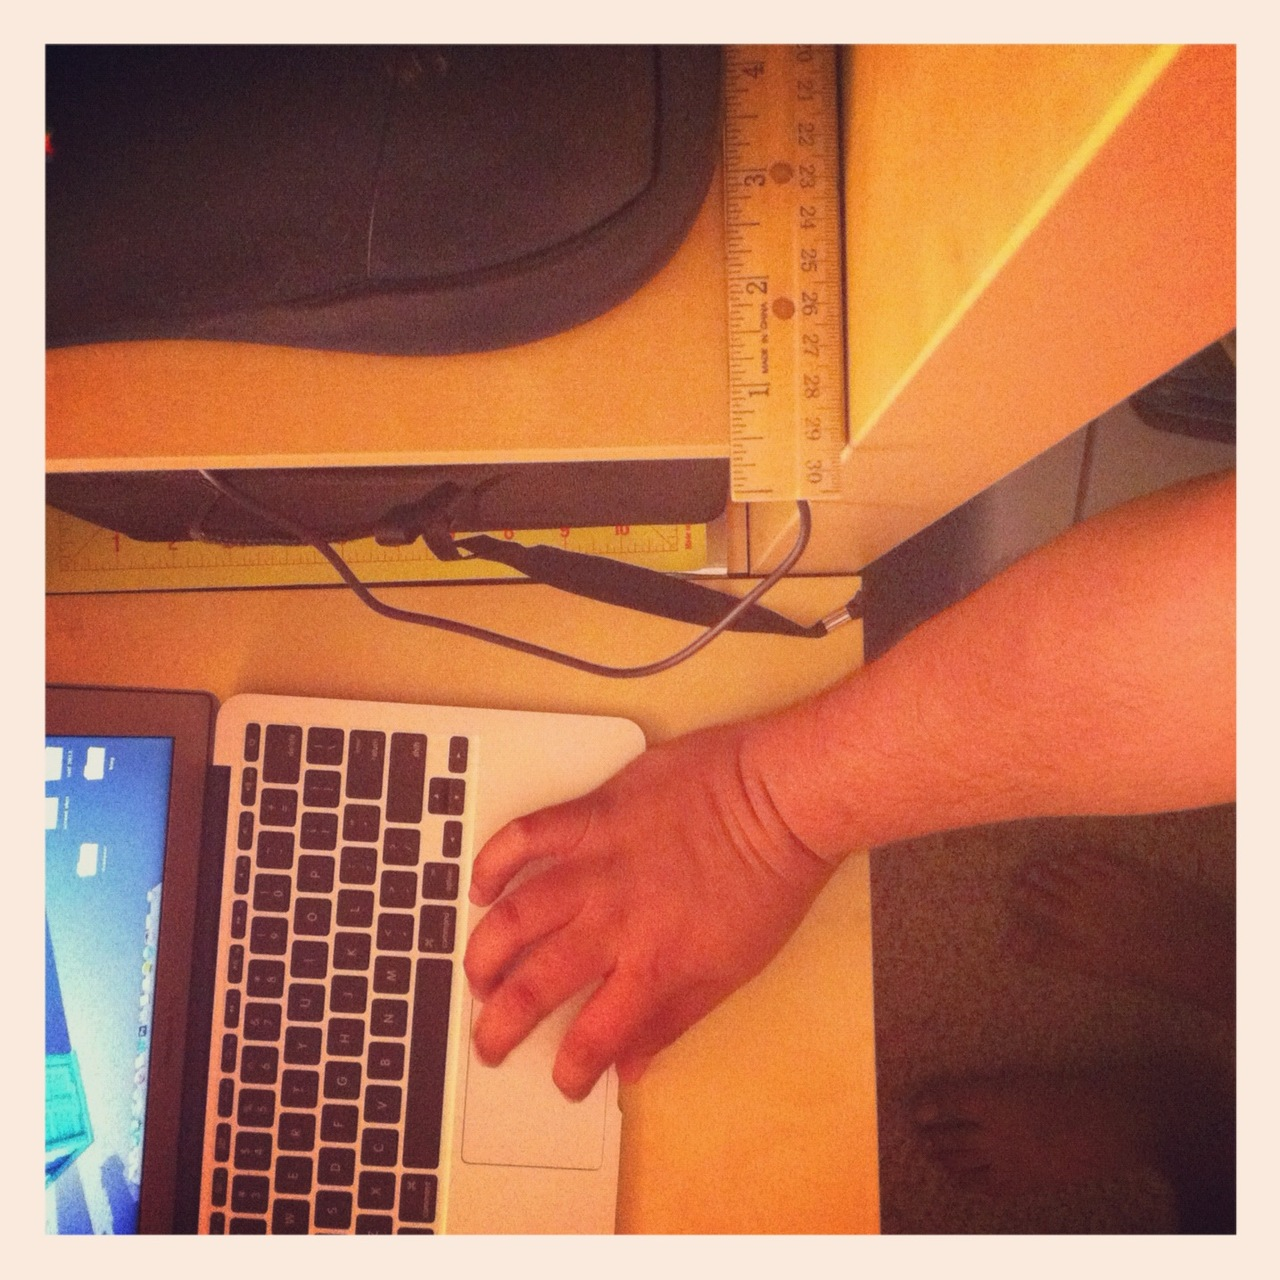 While working on some correspondence this evening, I looked down and realized I had ape like hands.